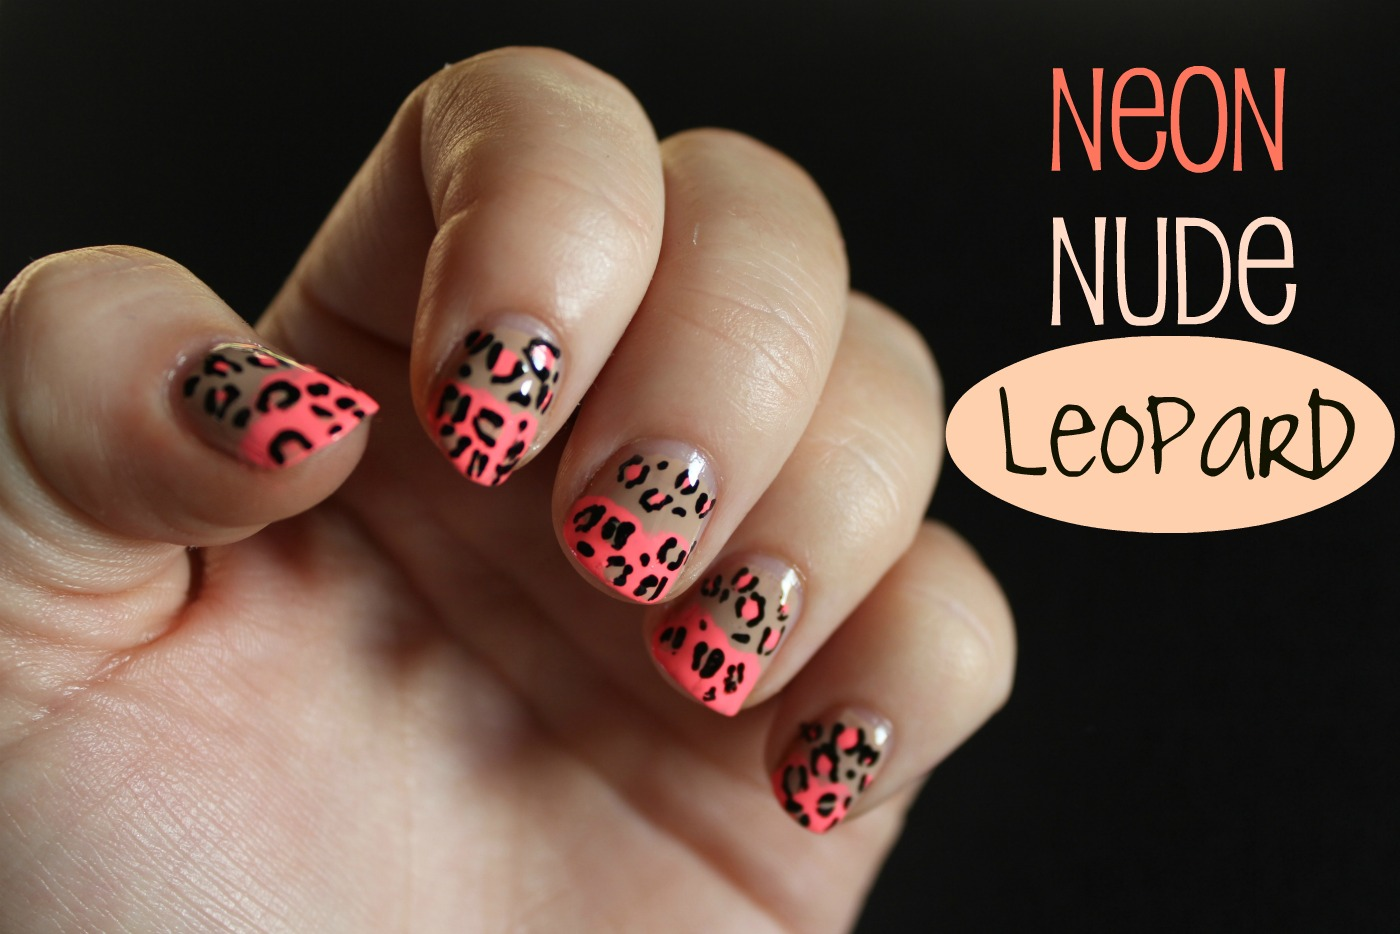 Cherrysue Doin The Do Neon Nude Leopard Nails With A Simple How To